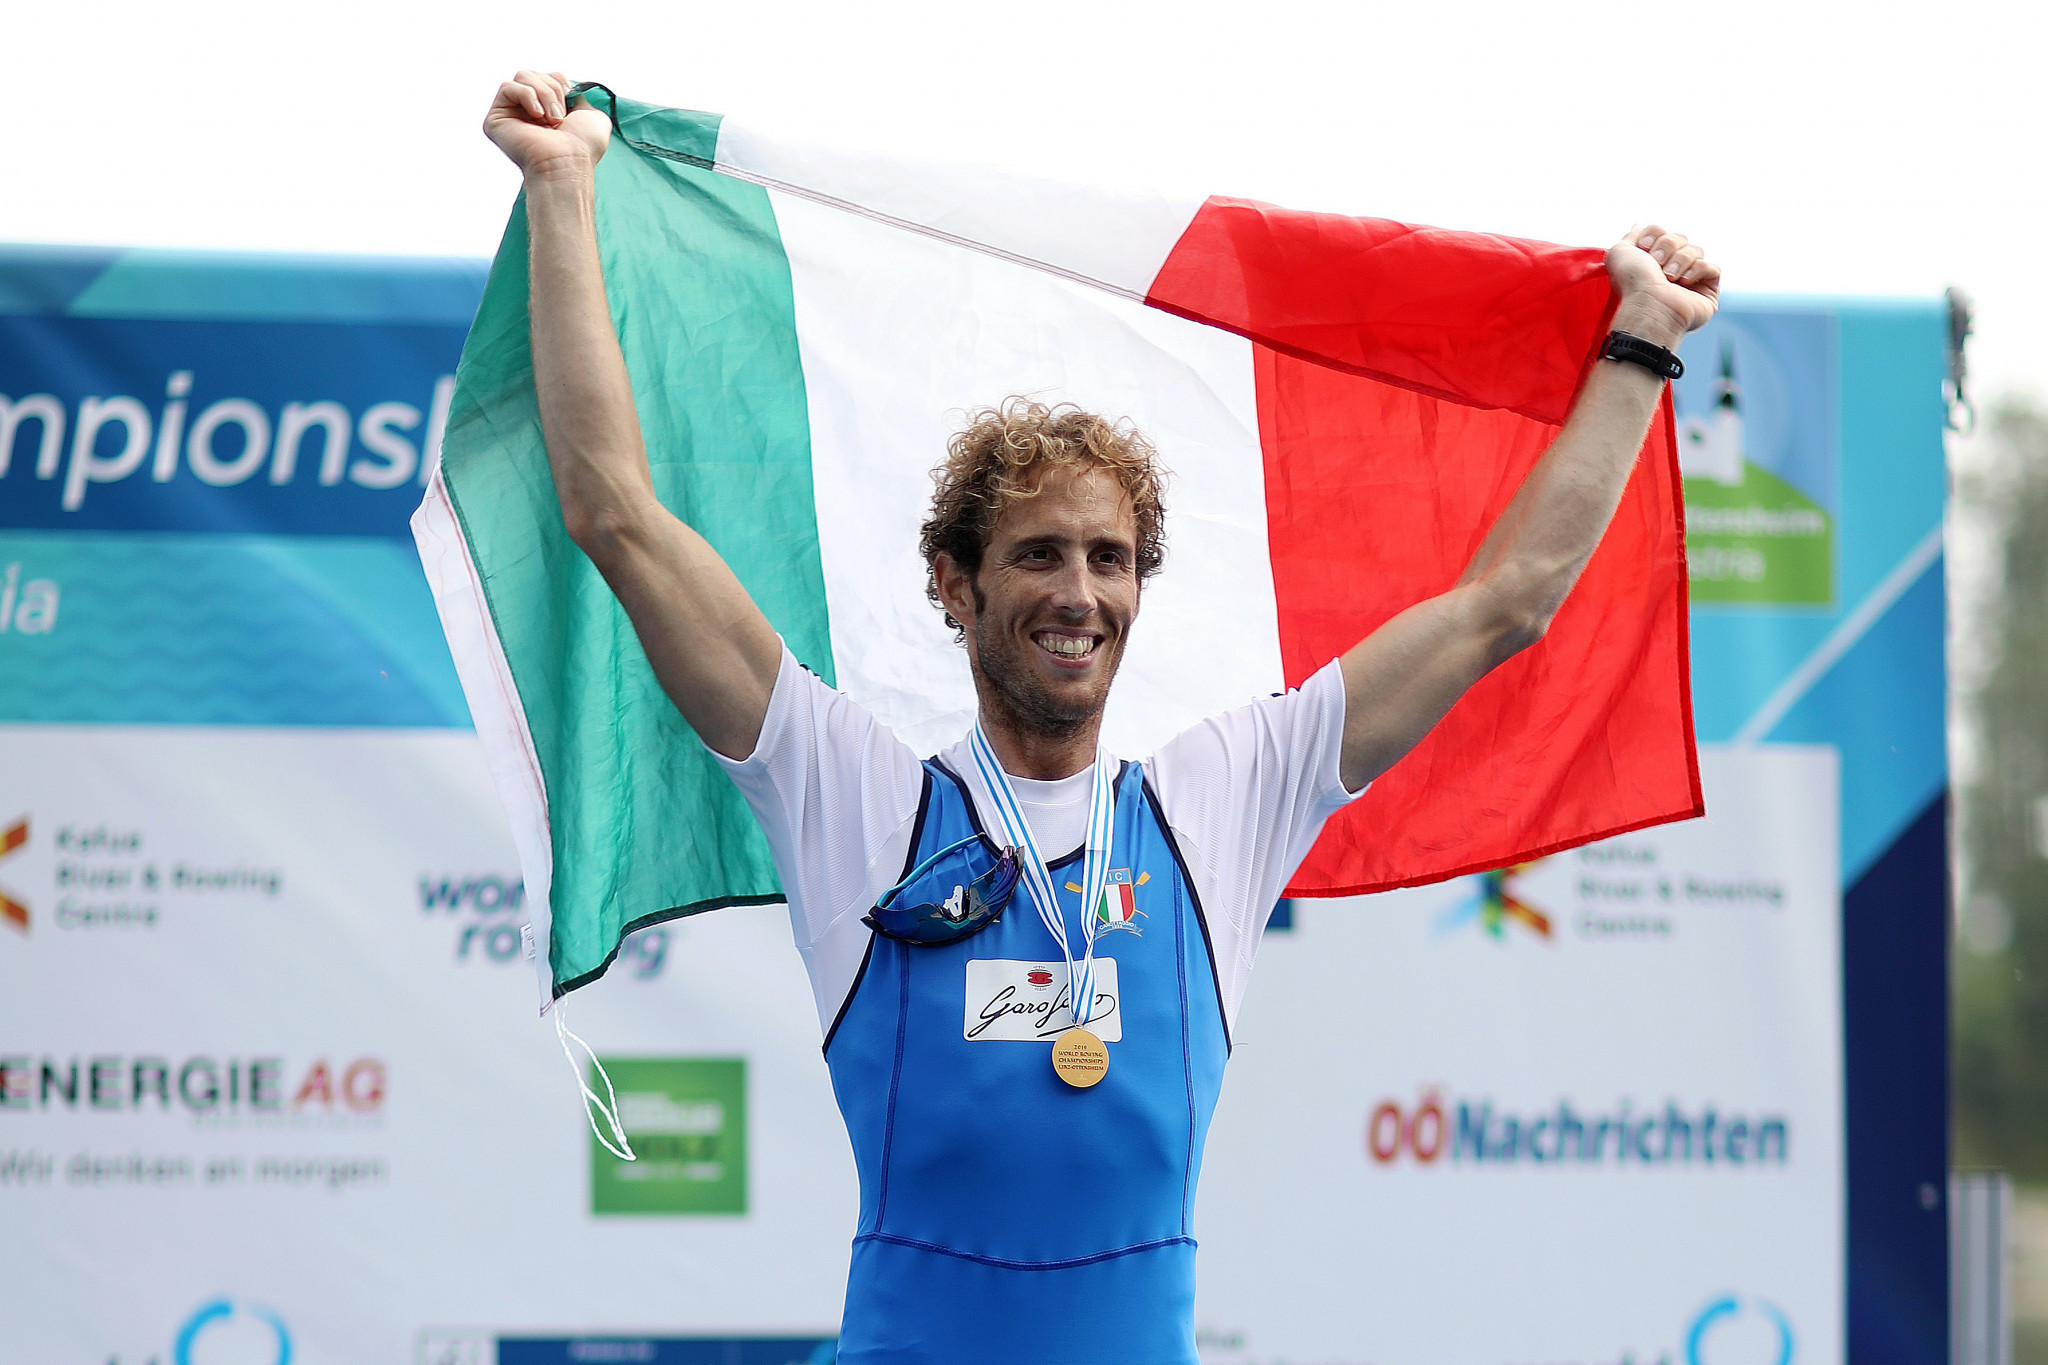 Italy's Martino Goretti secured his place at next year's World Rowing Indoor Championships ©Getty Images